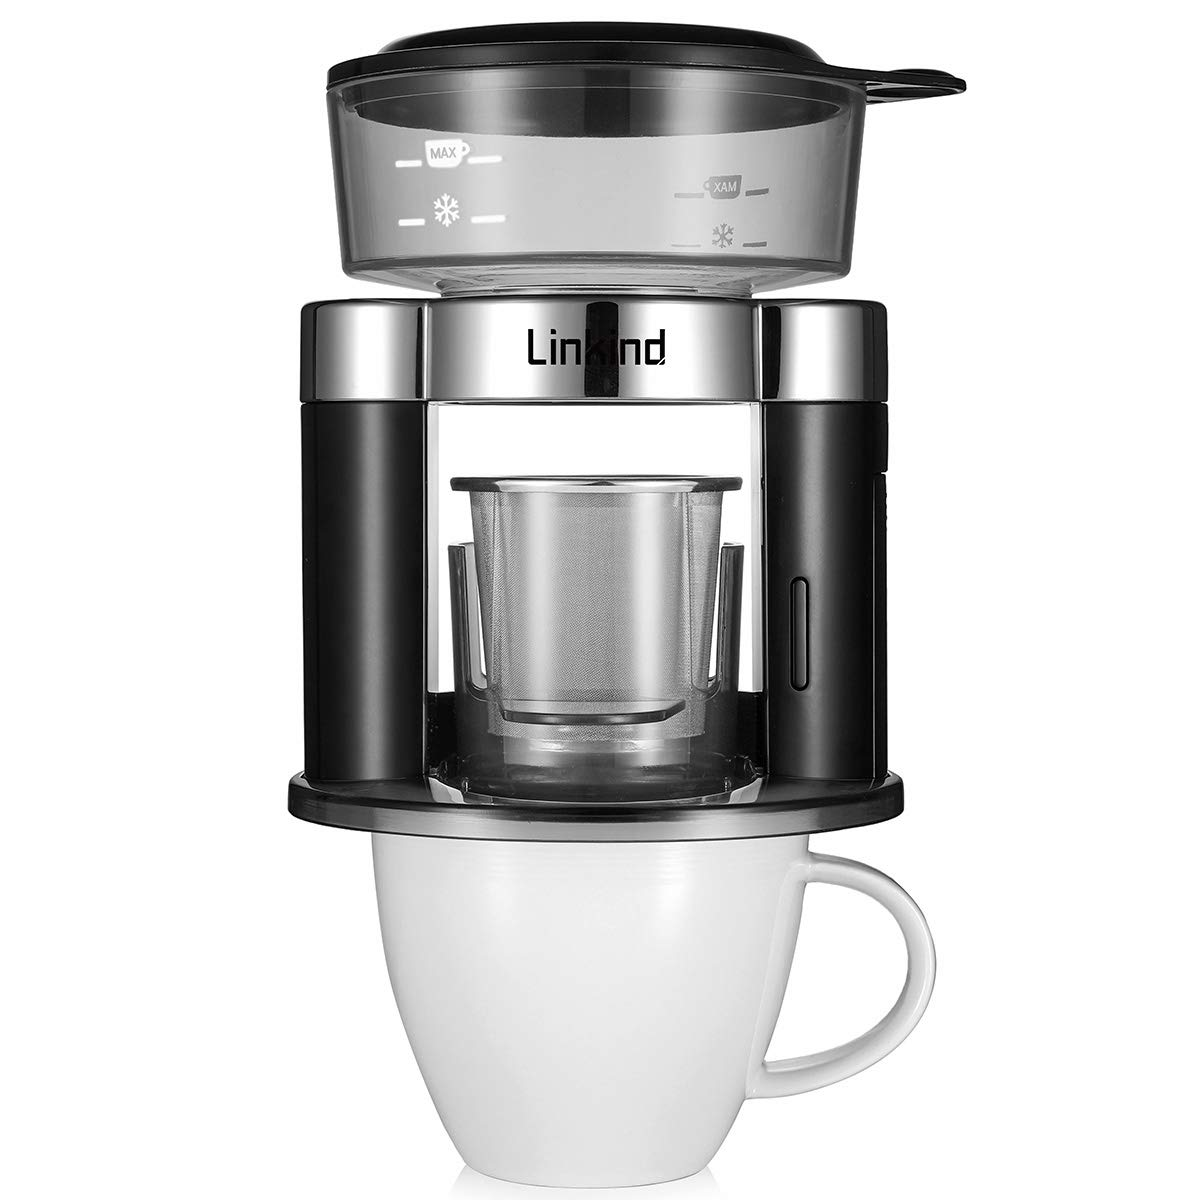 Linkind Automatic Pour Over Coffee Maker, Single Cup Brewer with Reusable Stainless Steel Filter, Simulate Handcraft, Compact in Size, Battery-driven for Portable Indoor and Outdoor Use, Black